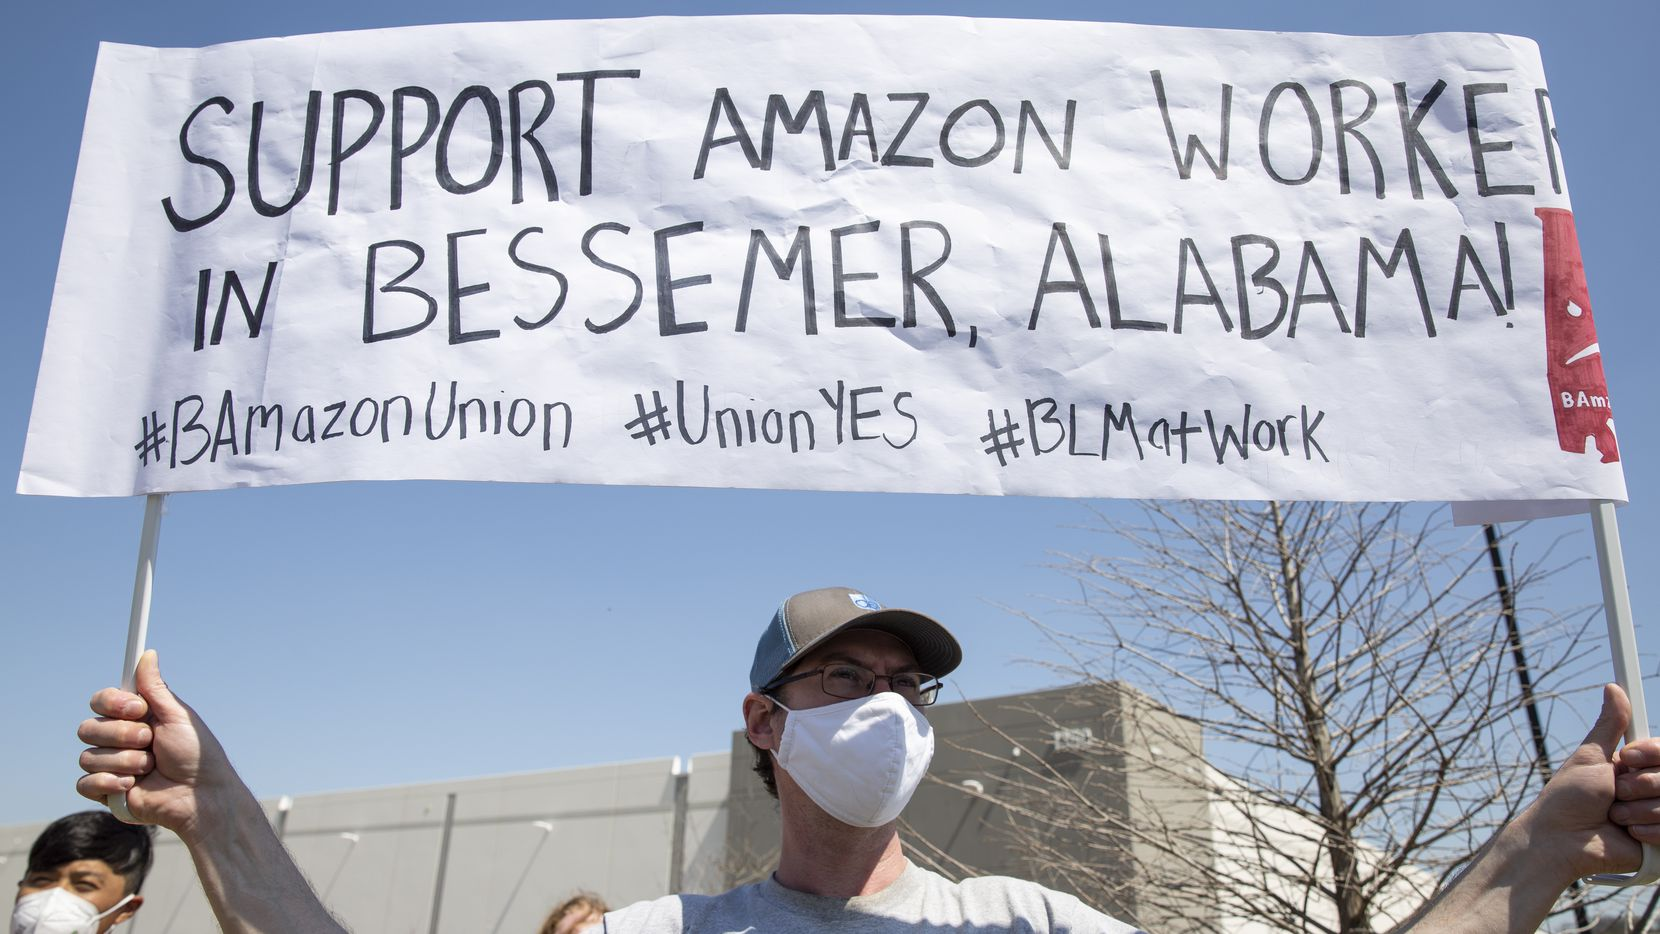 Joseph Barkell, a member of the International Workers of the World union, participates in a rally near the Amazon fulfillment center in Dallas at 1301 Chalk Hill Road earlier this month. The rally was organized by North Texas Socialist Alternative alongside organizations across the country engaging in an international day of solidarity with Amazon workers in Alabama.